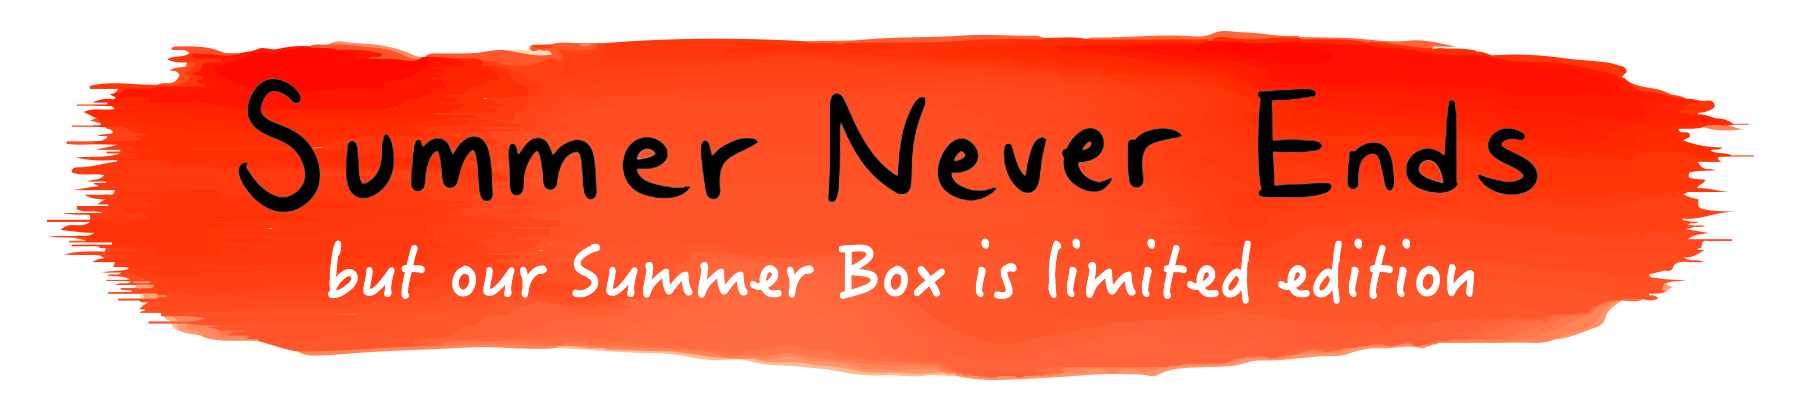 Summer Never Ends, but our Summer Box is limited edition.